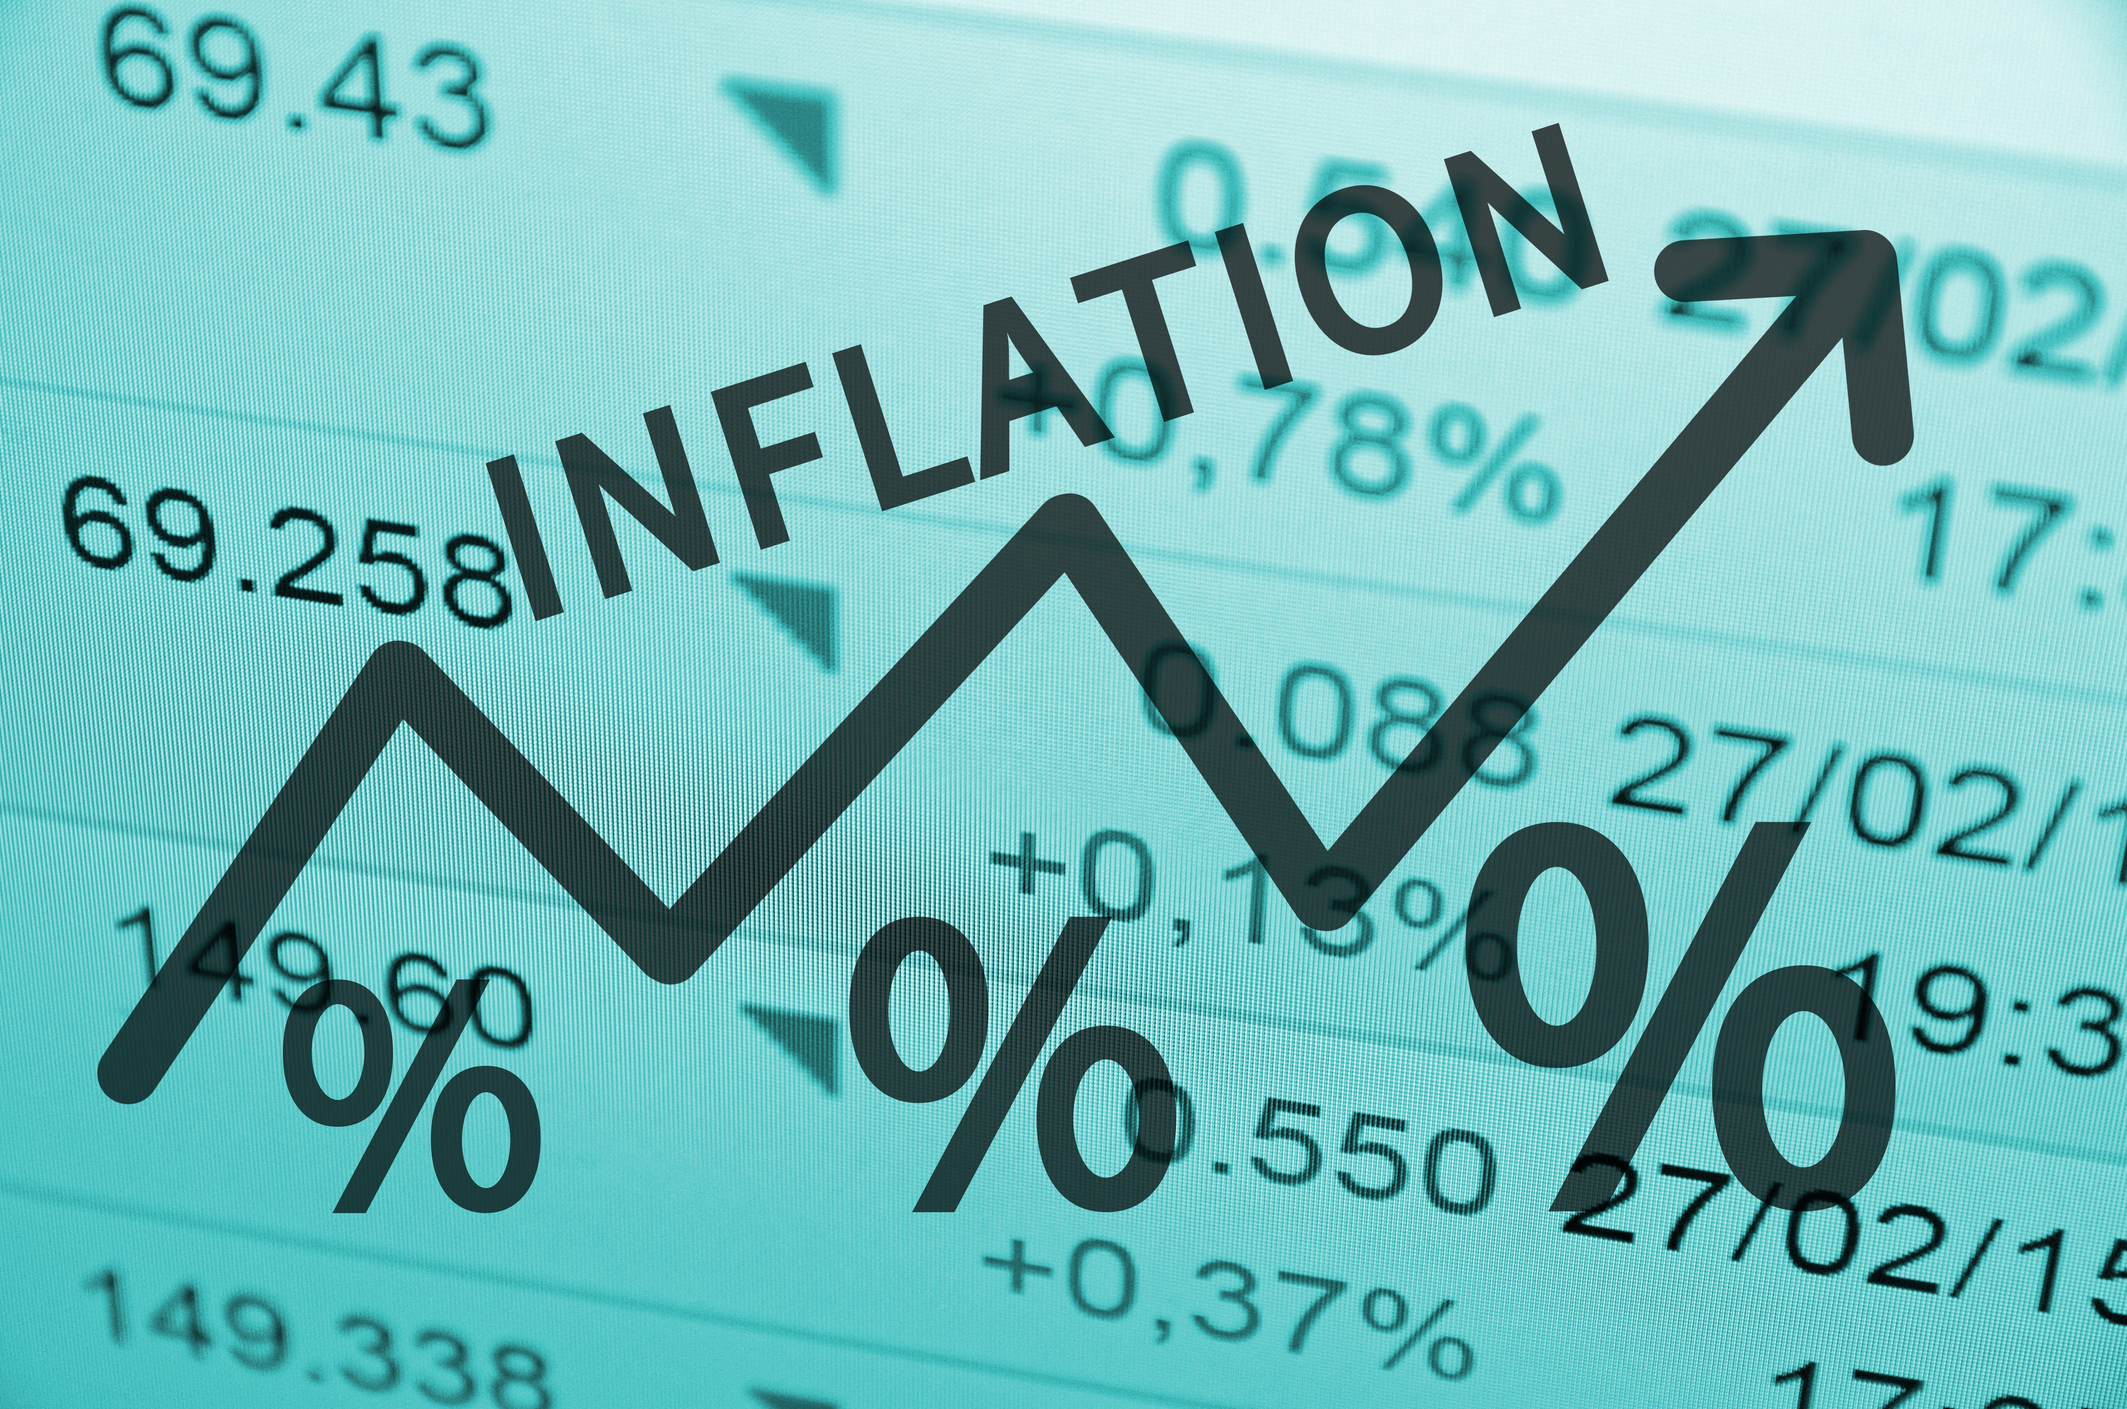 Fed Up With Inflation